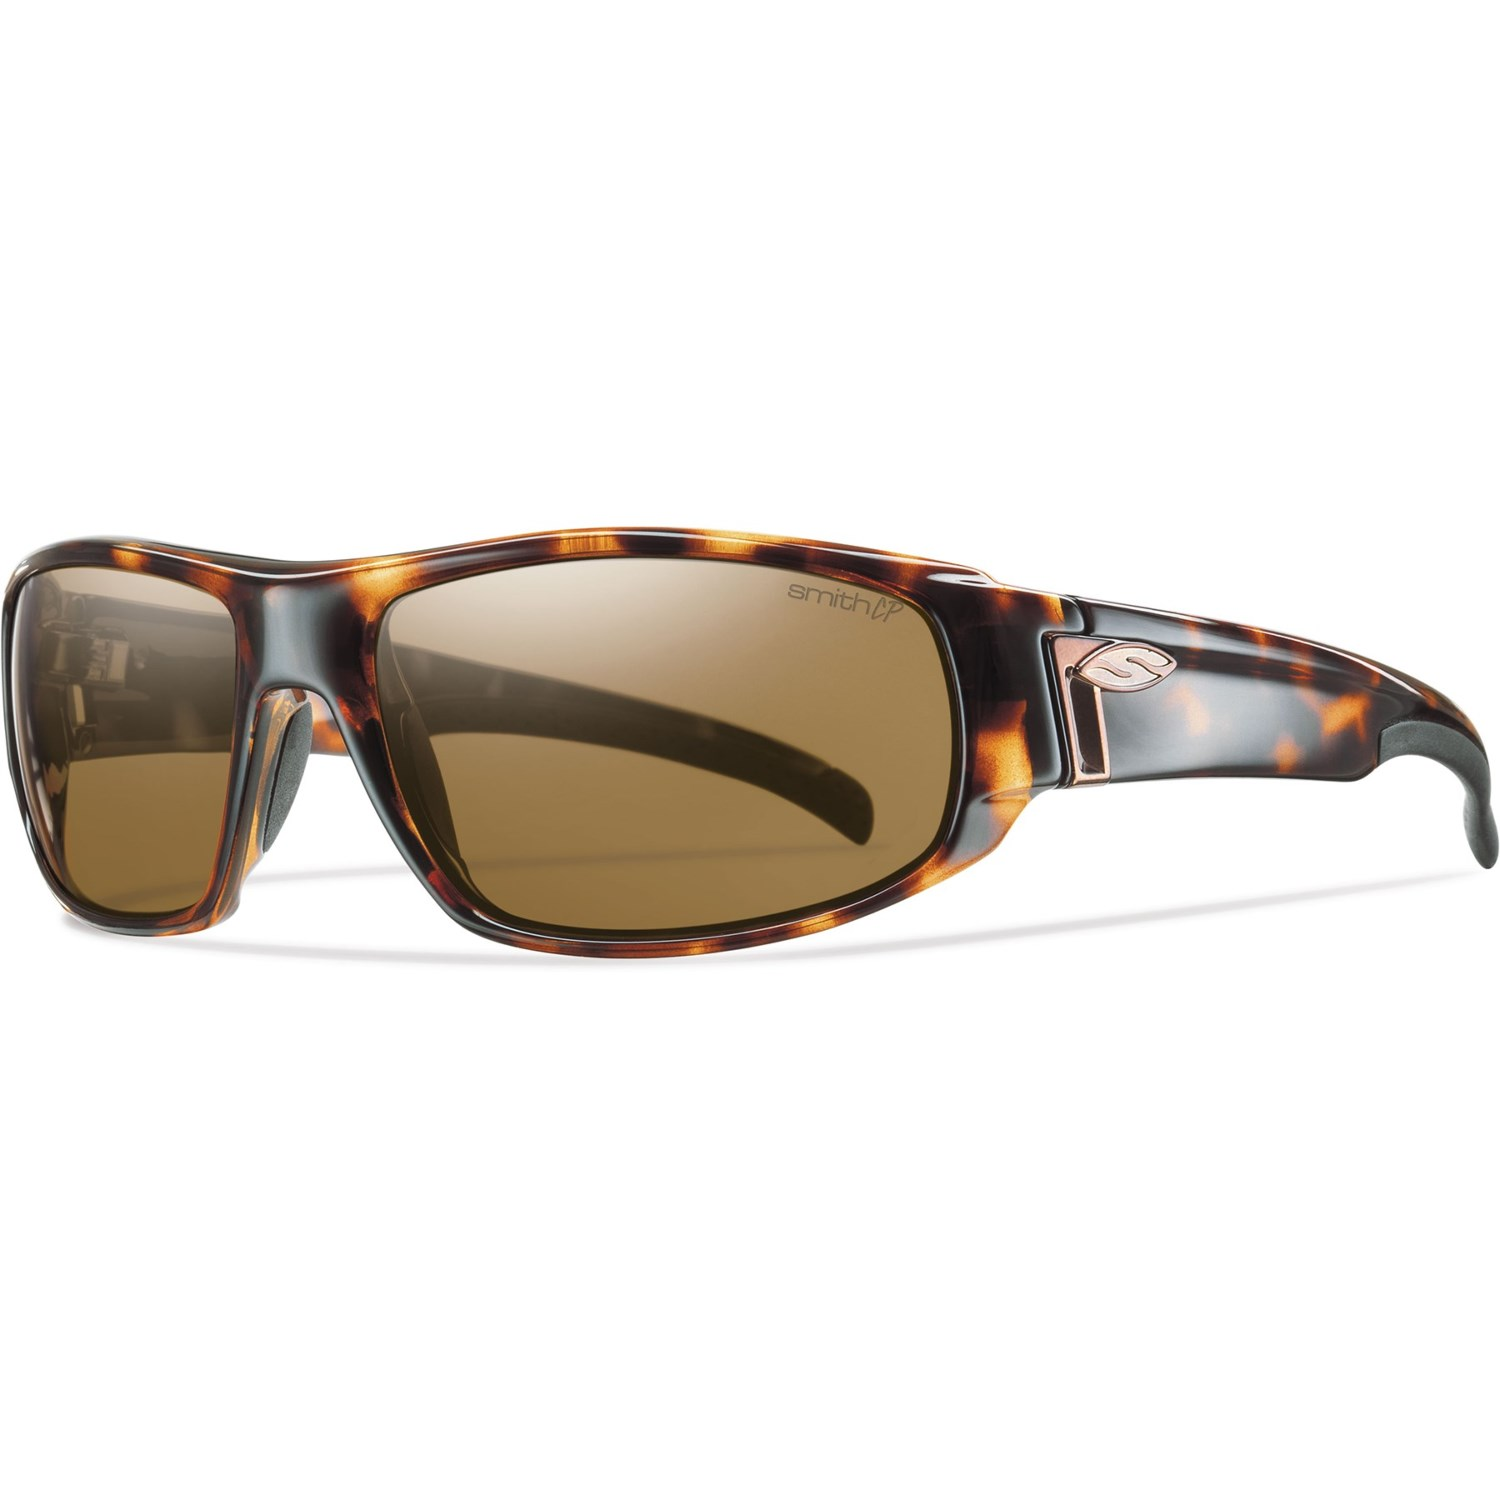 How To Tell If Sunglasses Are Polarized  how can you tell if a pair of sunglasses have polarized lenses